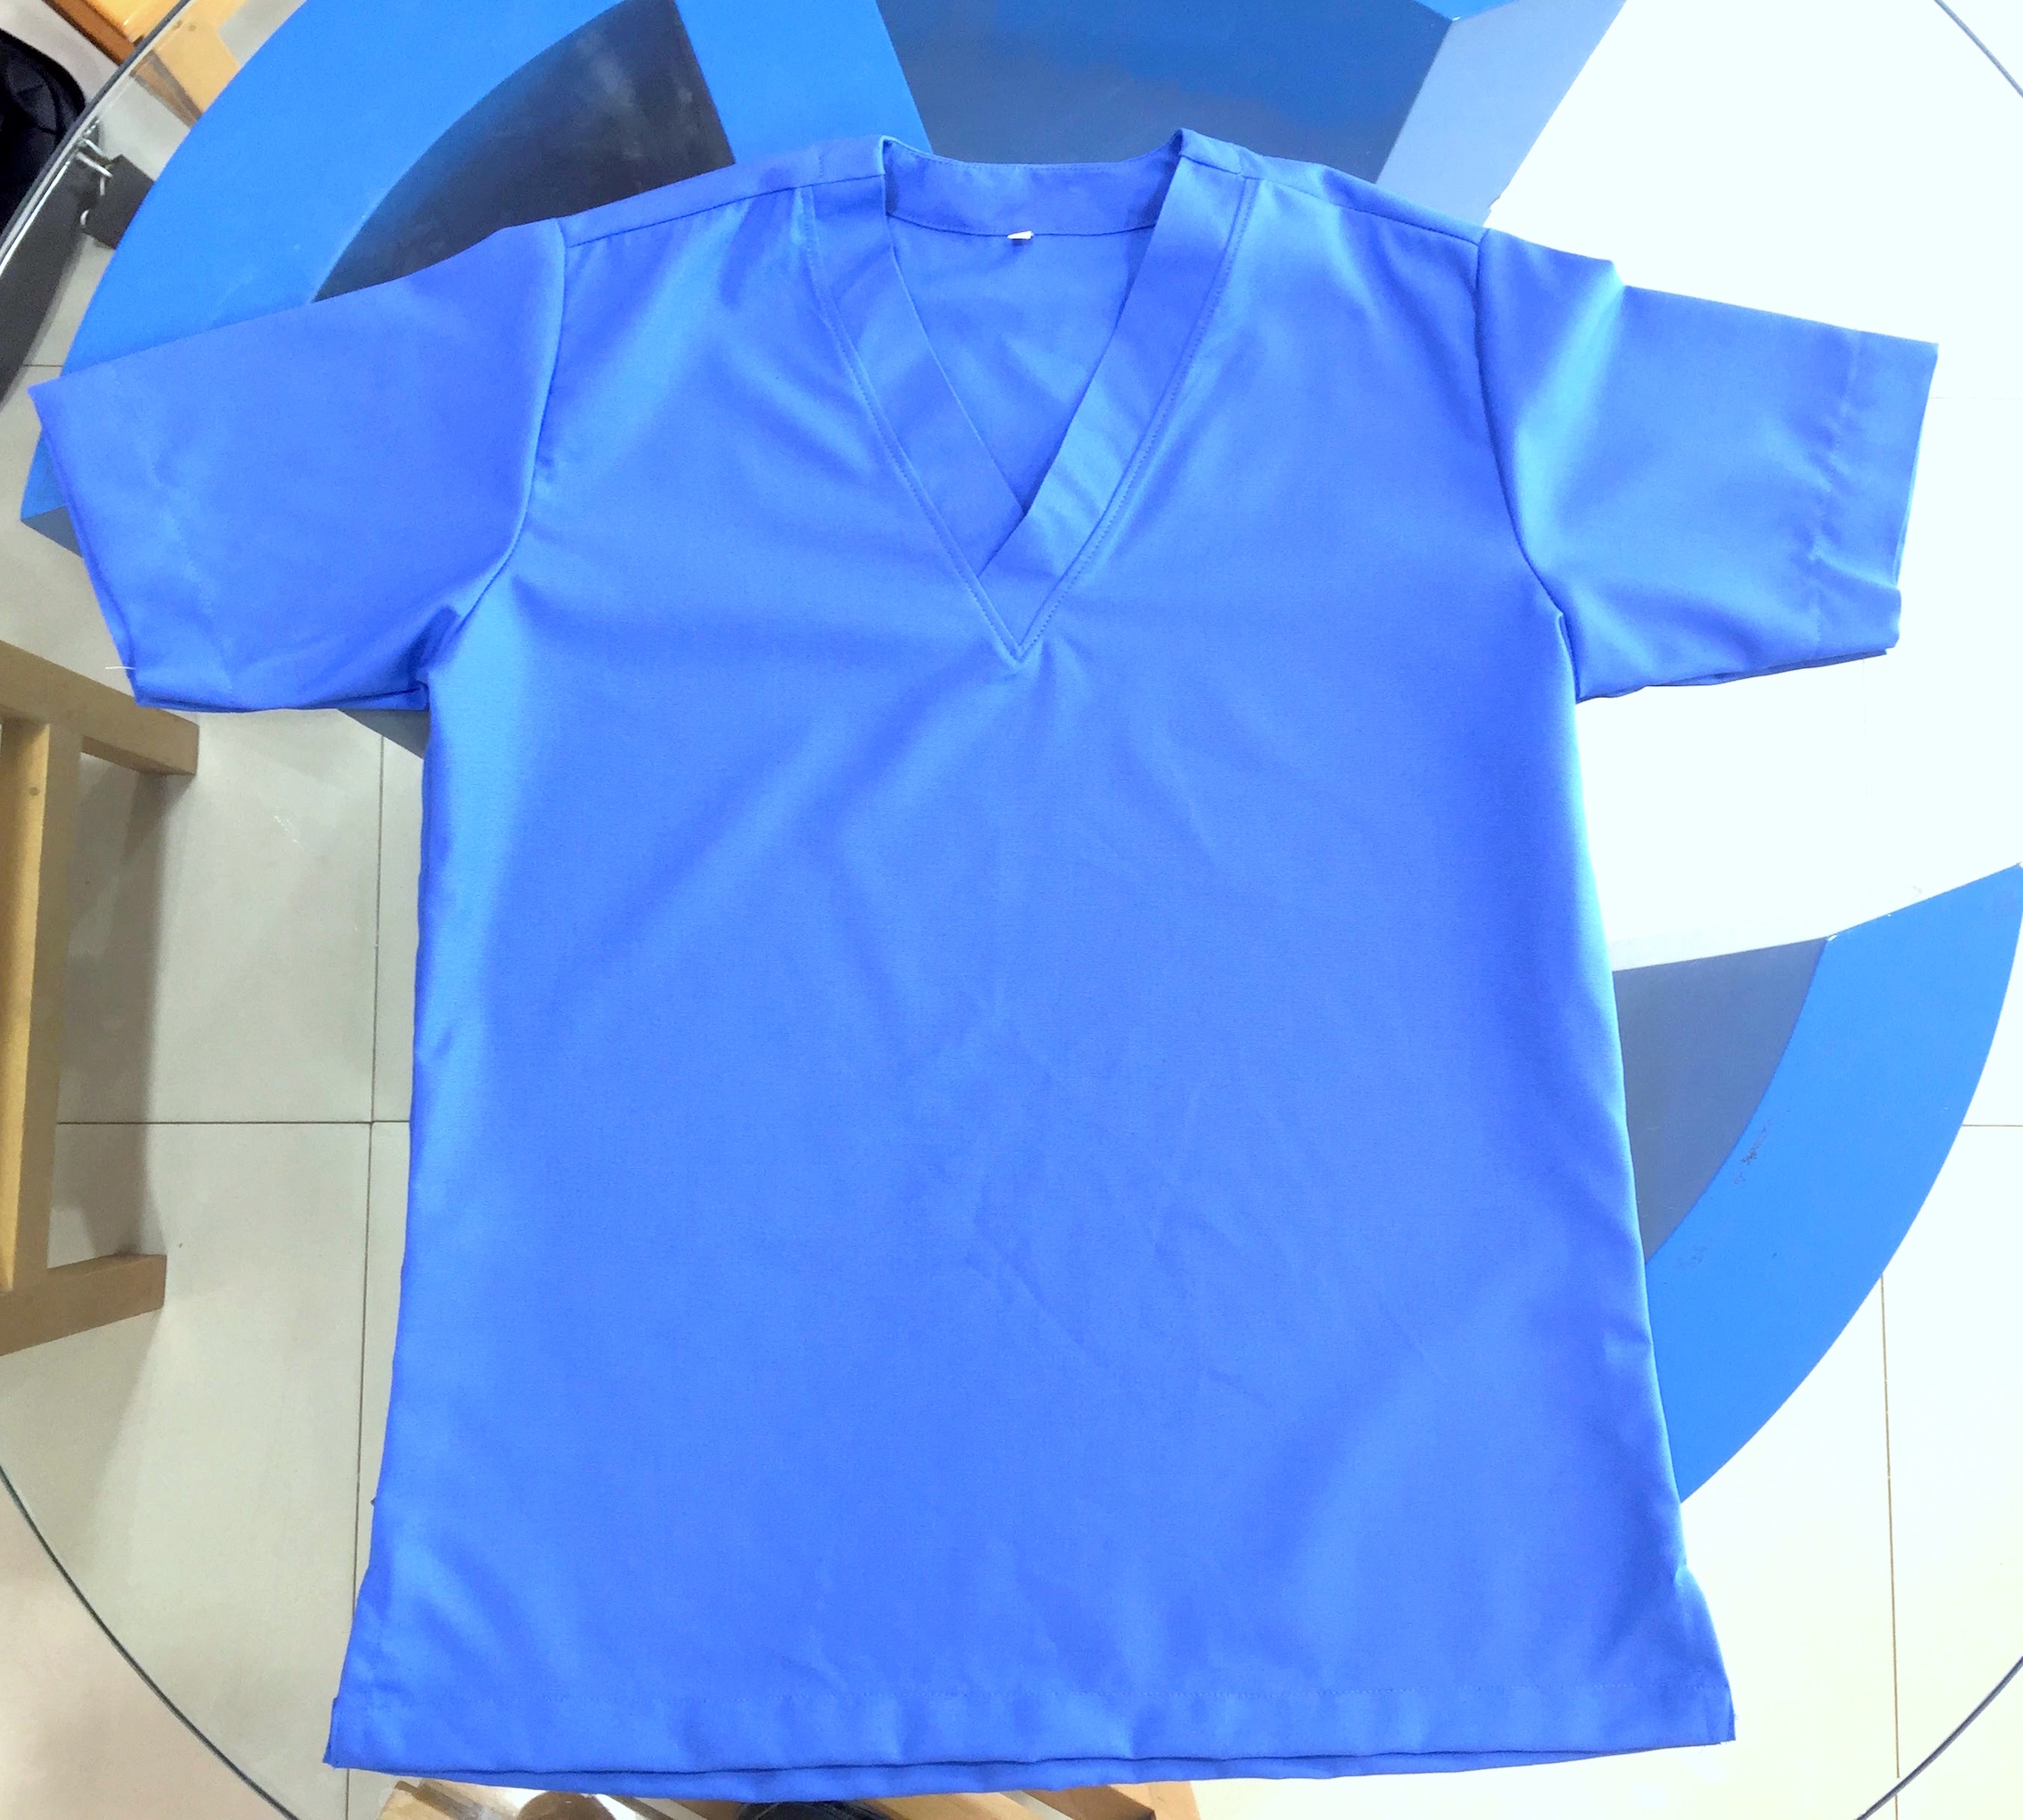 nursing scrubs uniform top and bottom design Blue colour